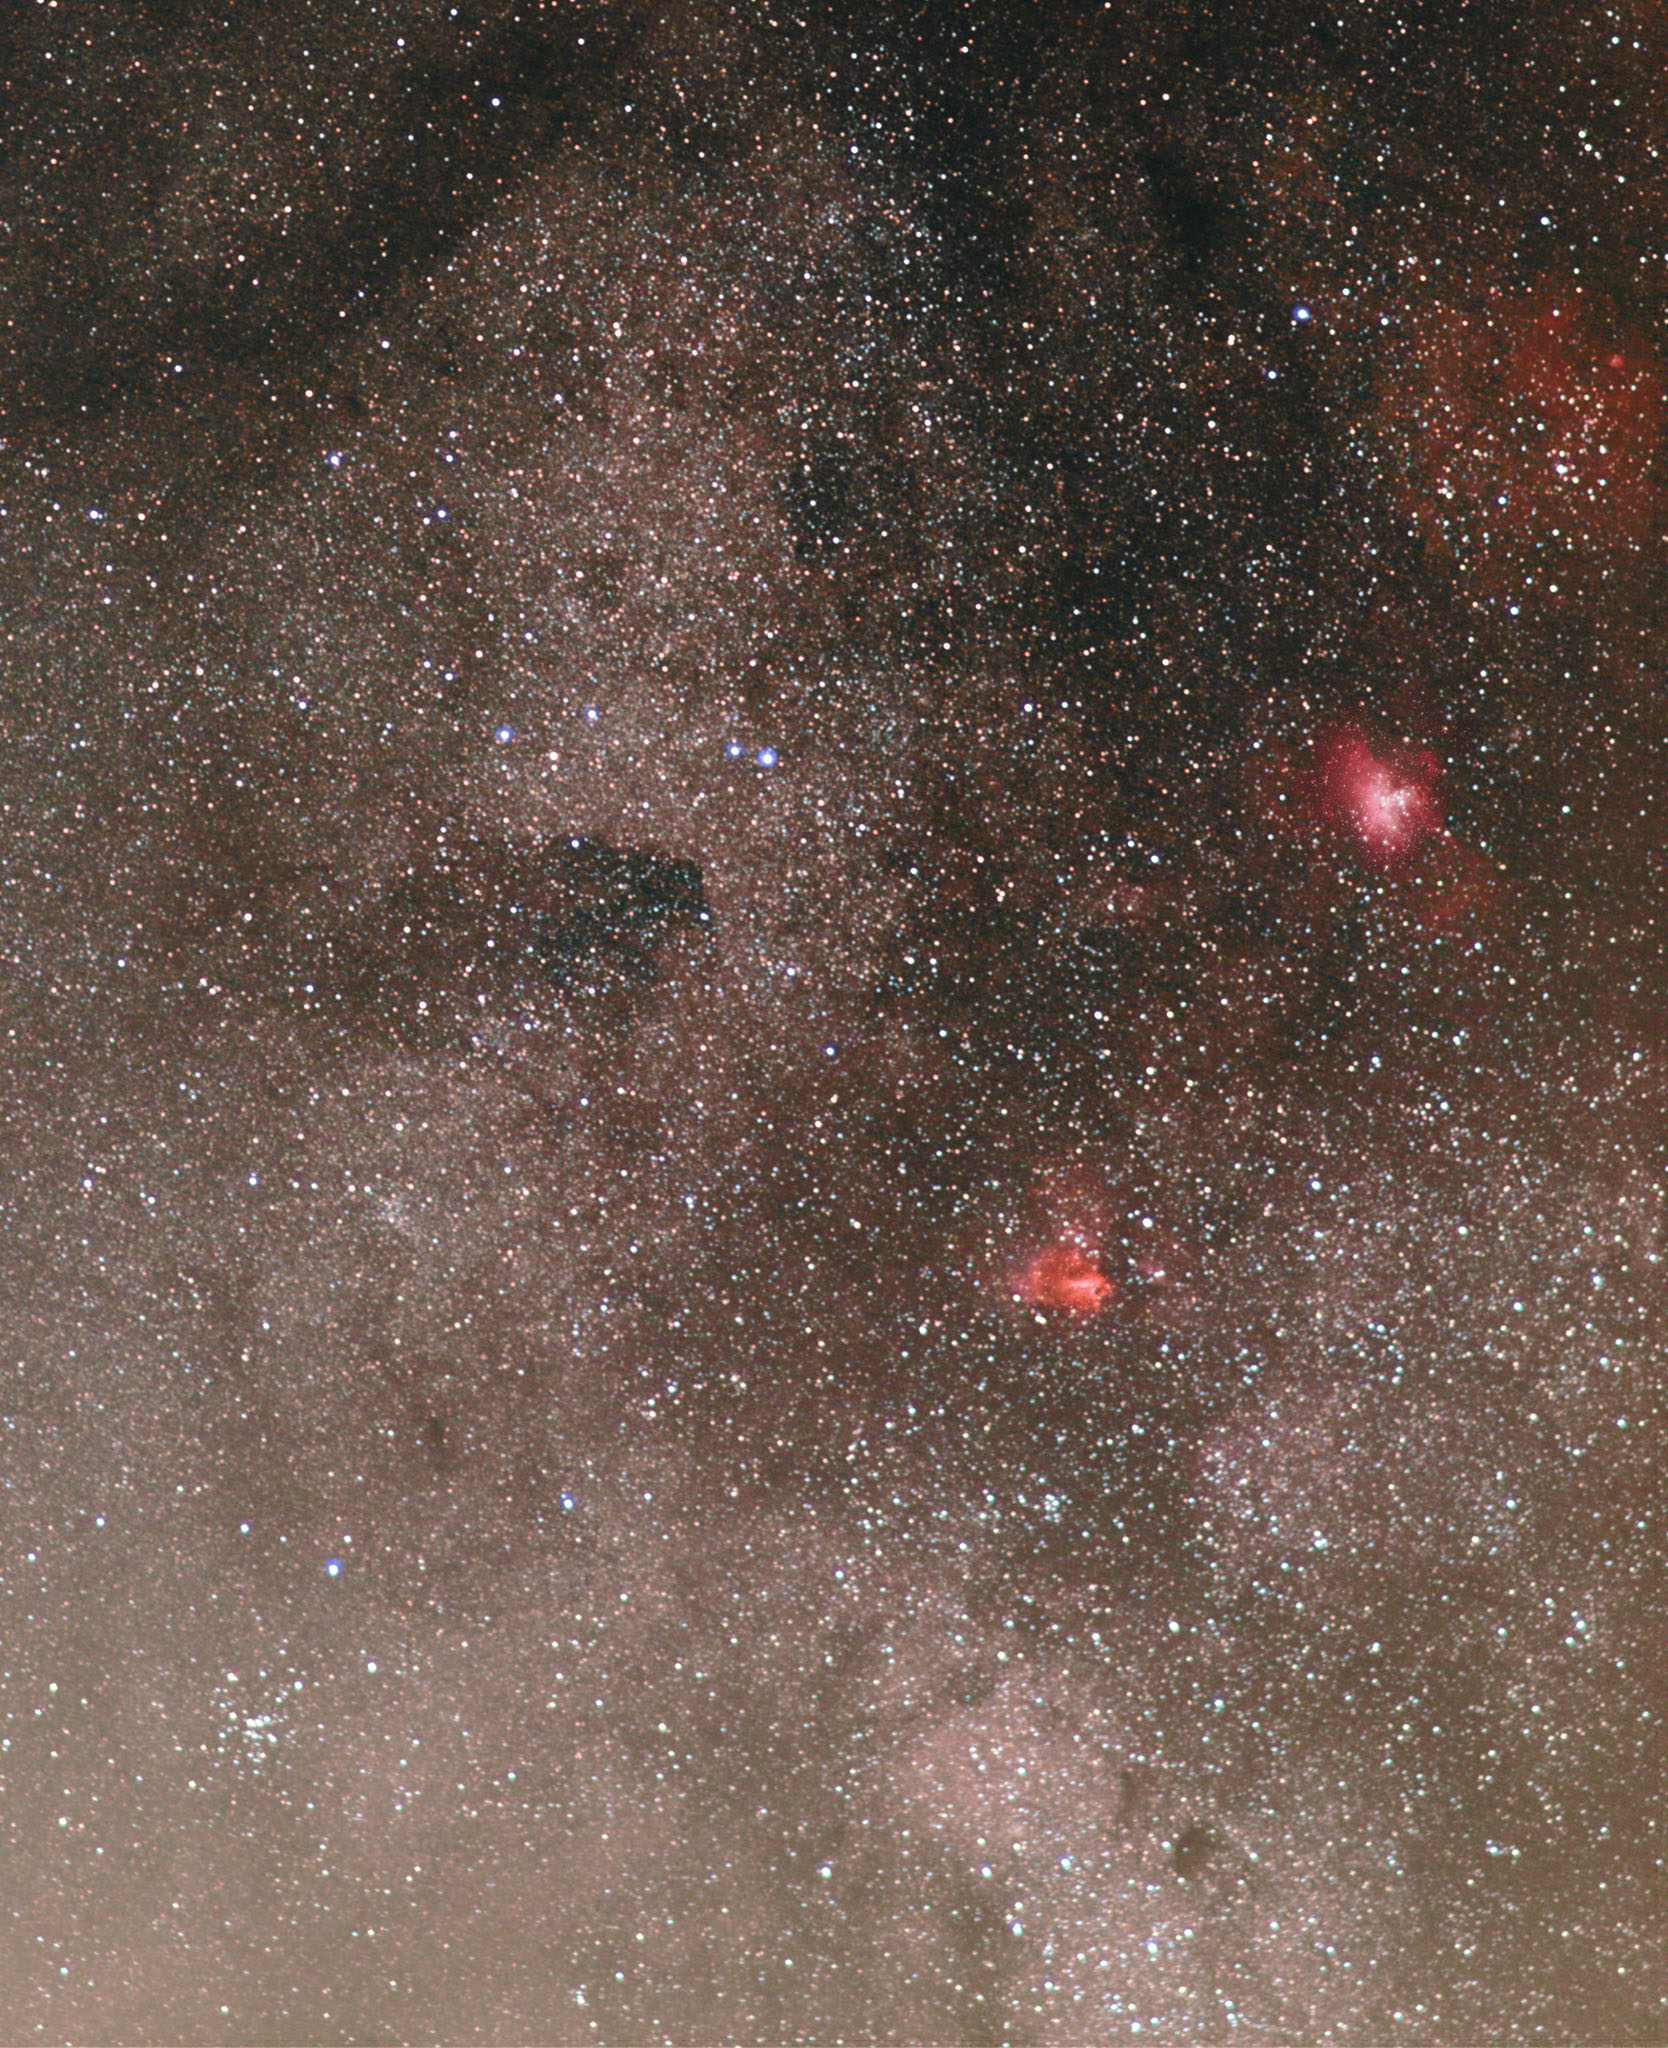 Eagle and Omega Nebulae M16 & M17 Open Clusters M18, M24 and M25